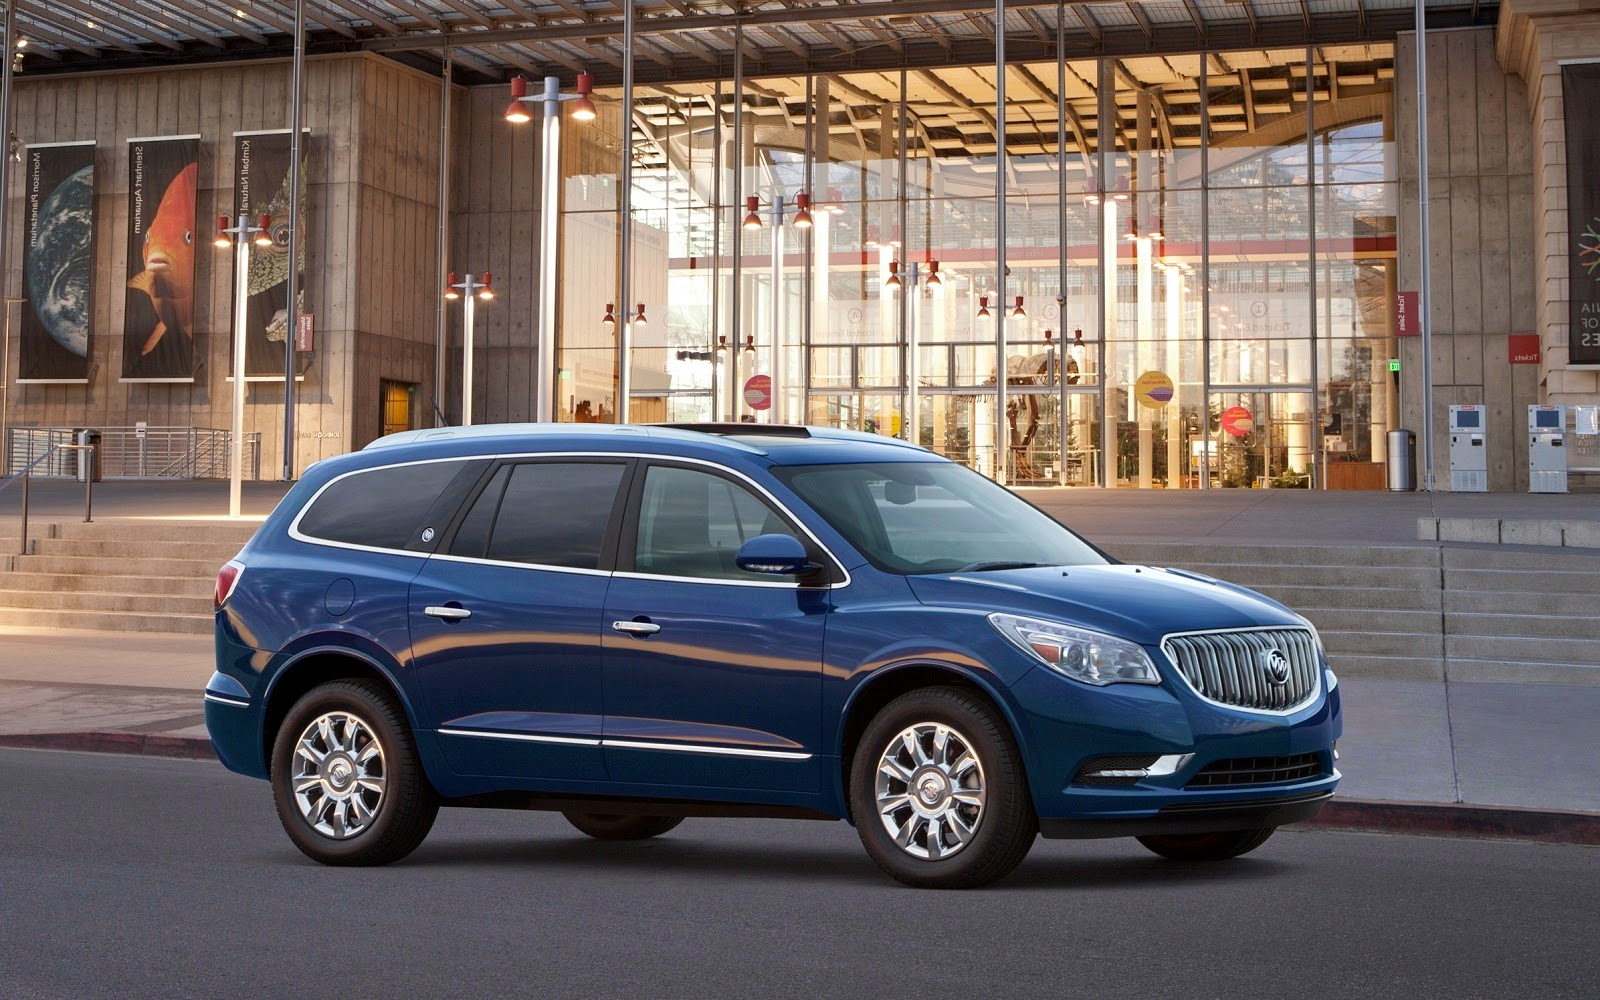 buick enclave large luxury crossover suv car reviews. Black Bedroom Furniture Sets. Home Design Ideas